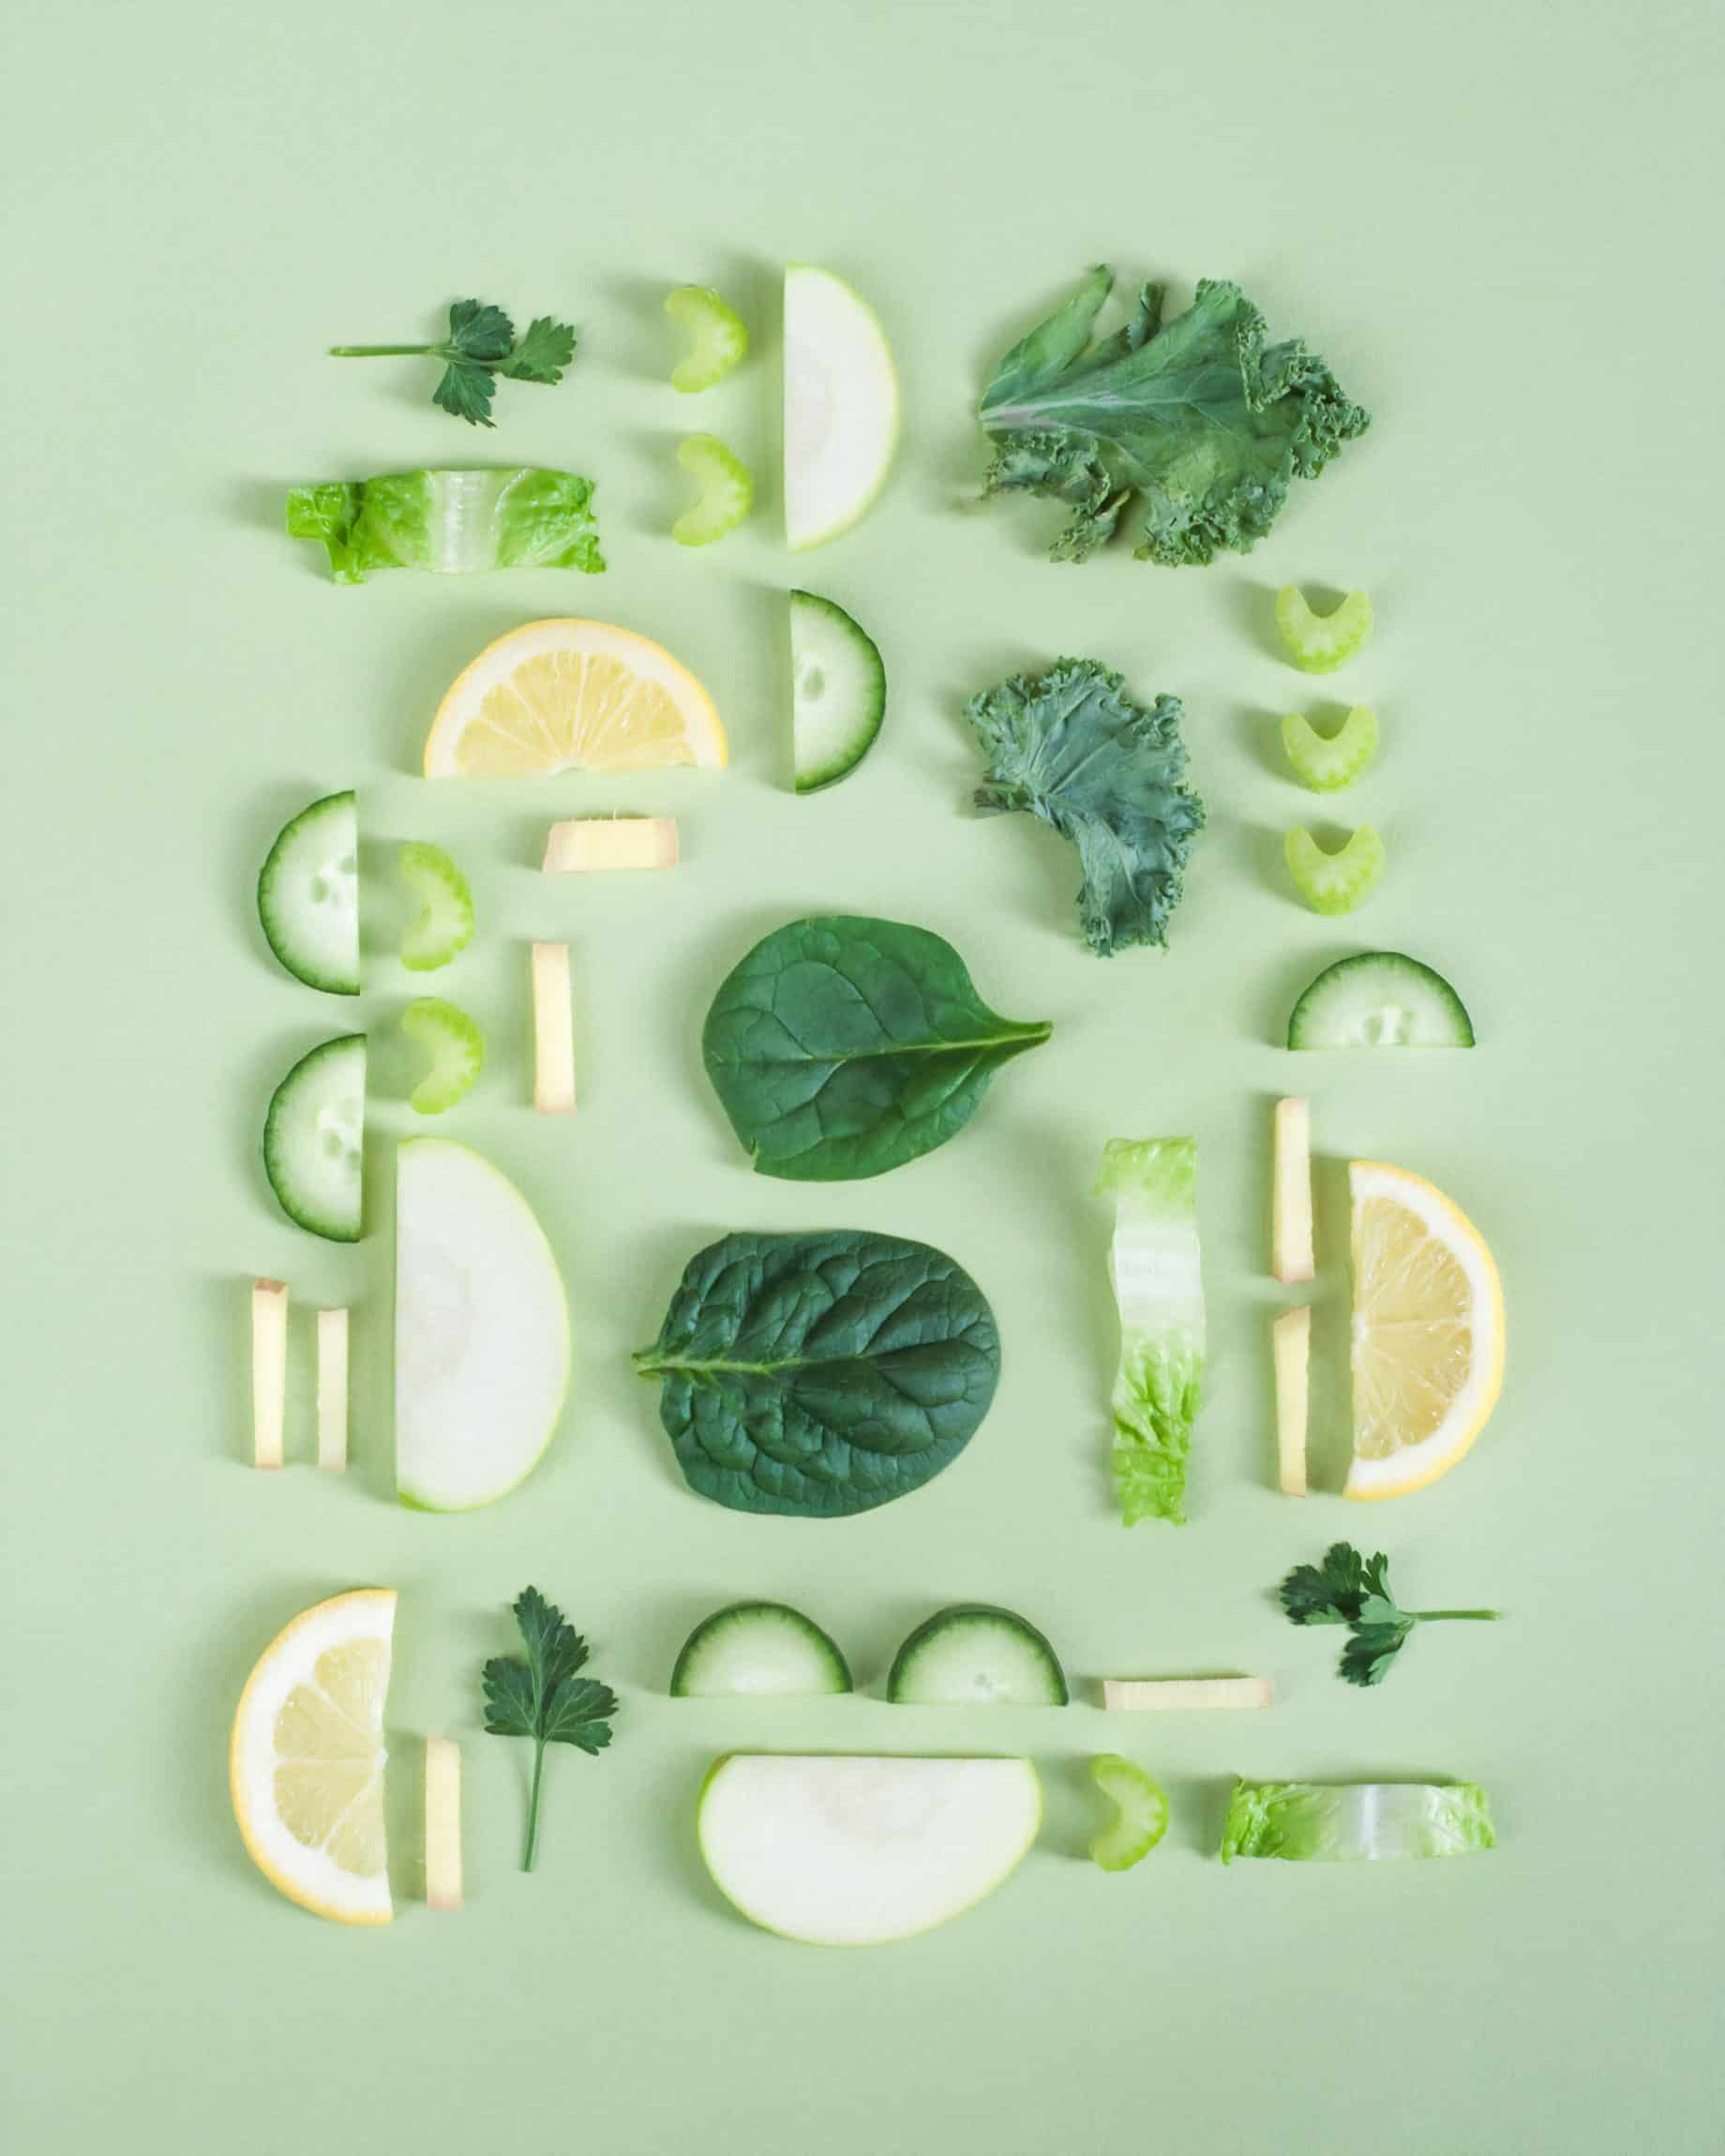 different green fruits and vegetables that are cut up and layed out in an aesthetically appealing way.